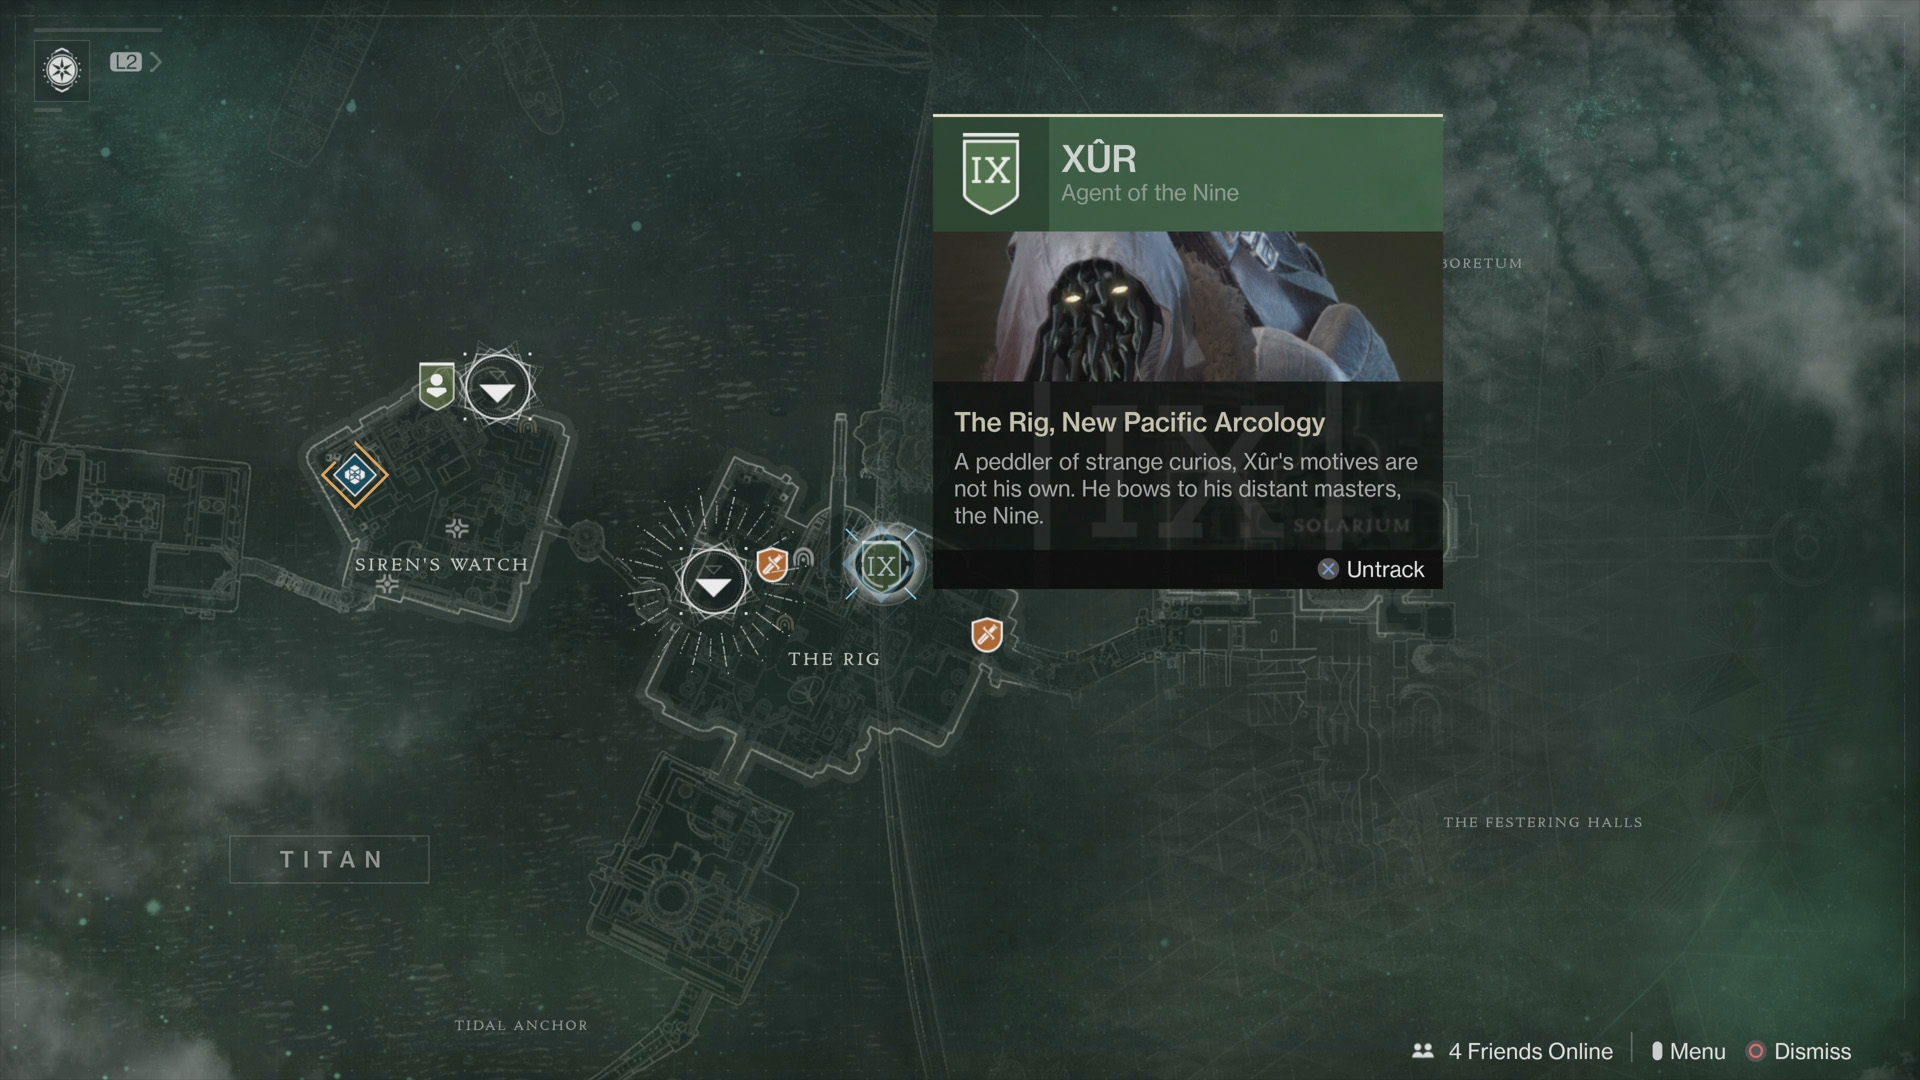 Destiny 2 - Where is Xur this week?